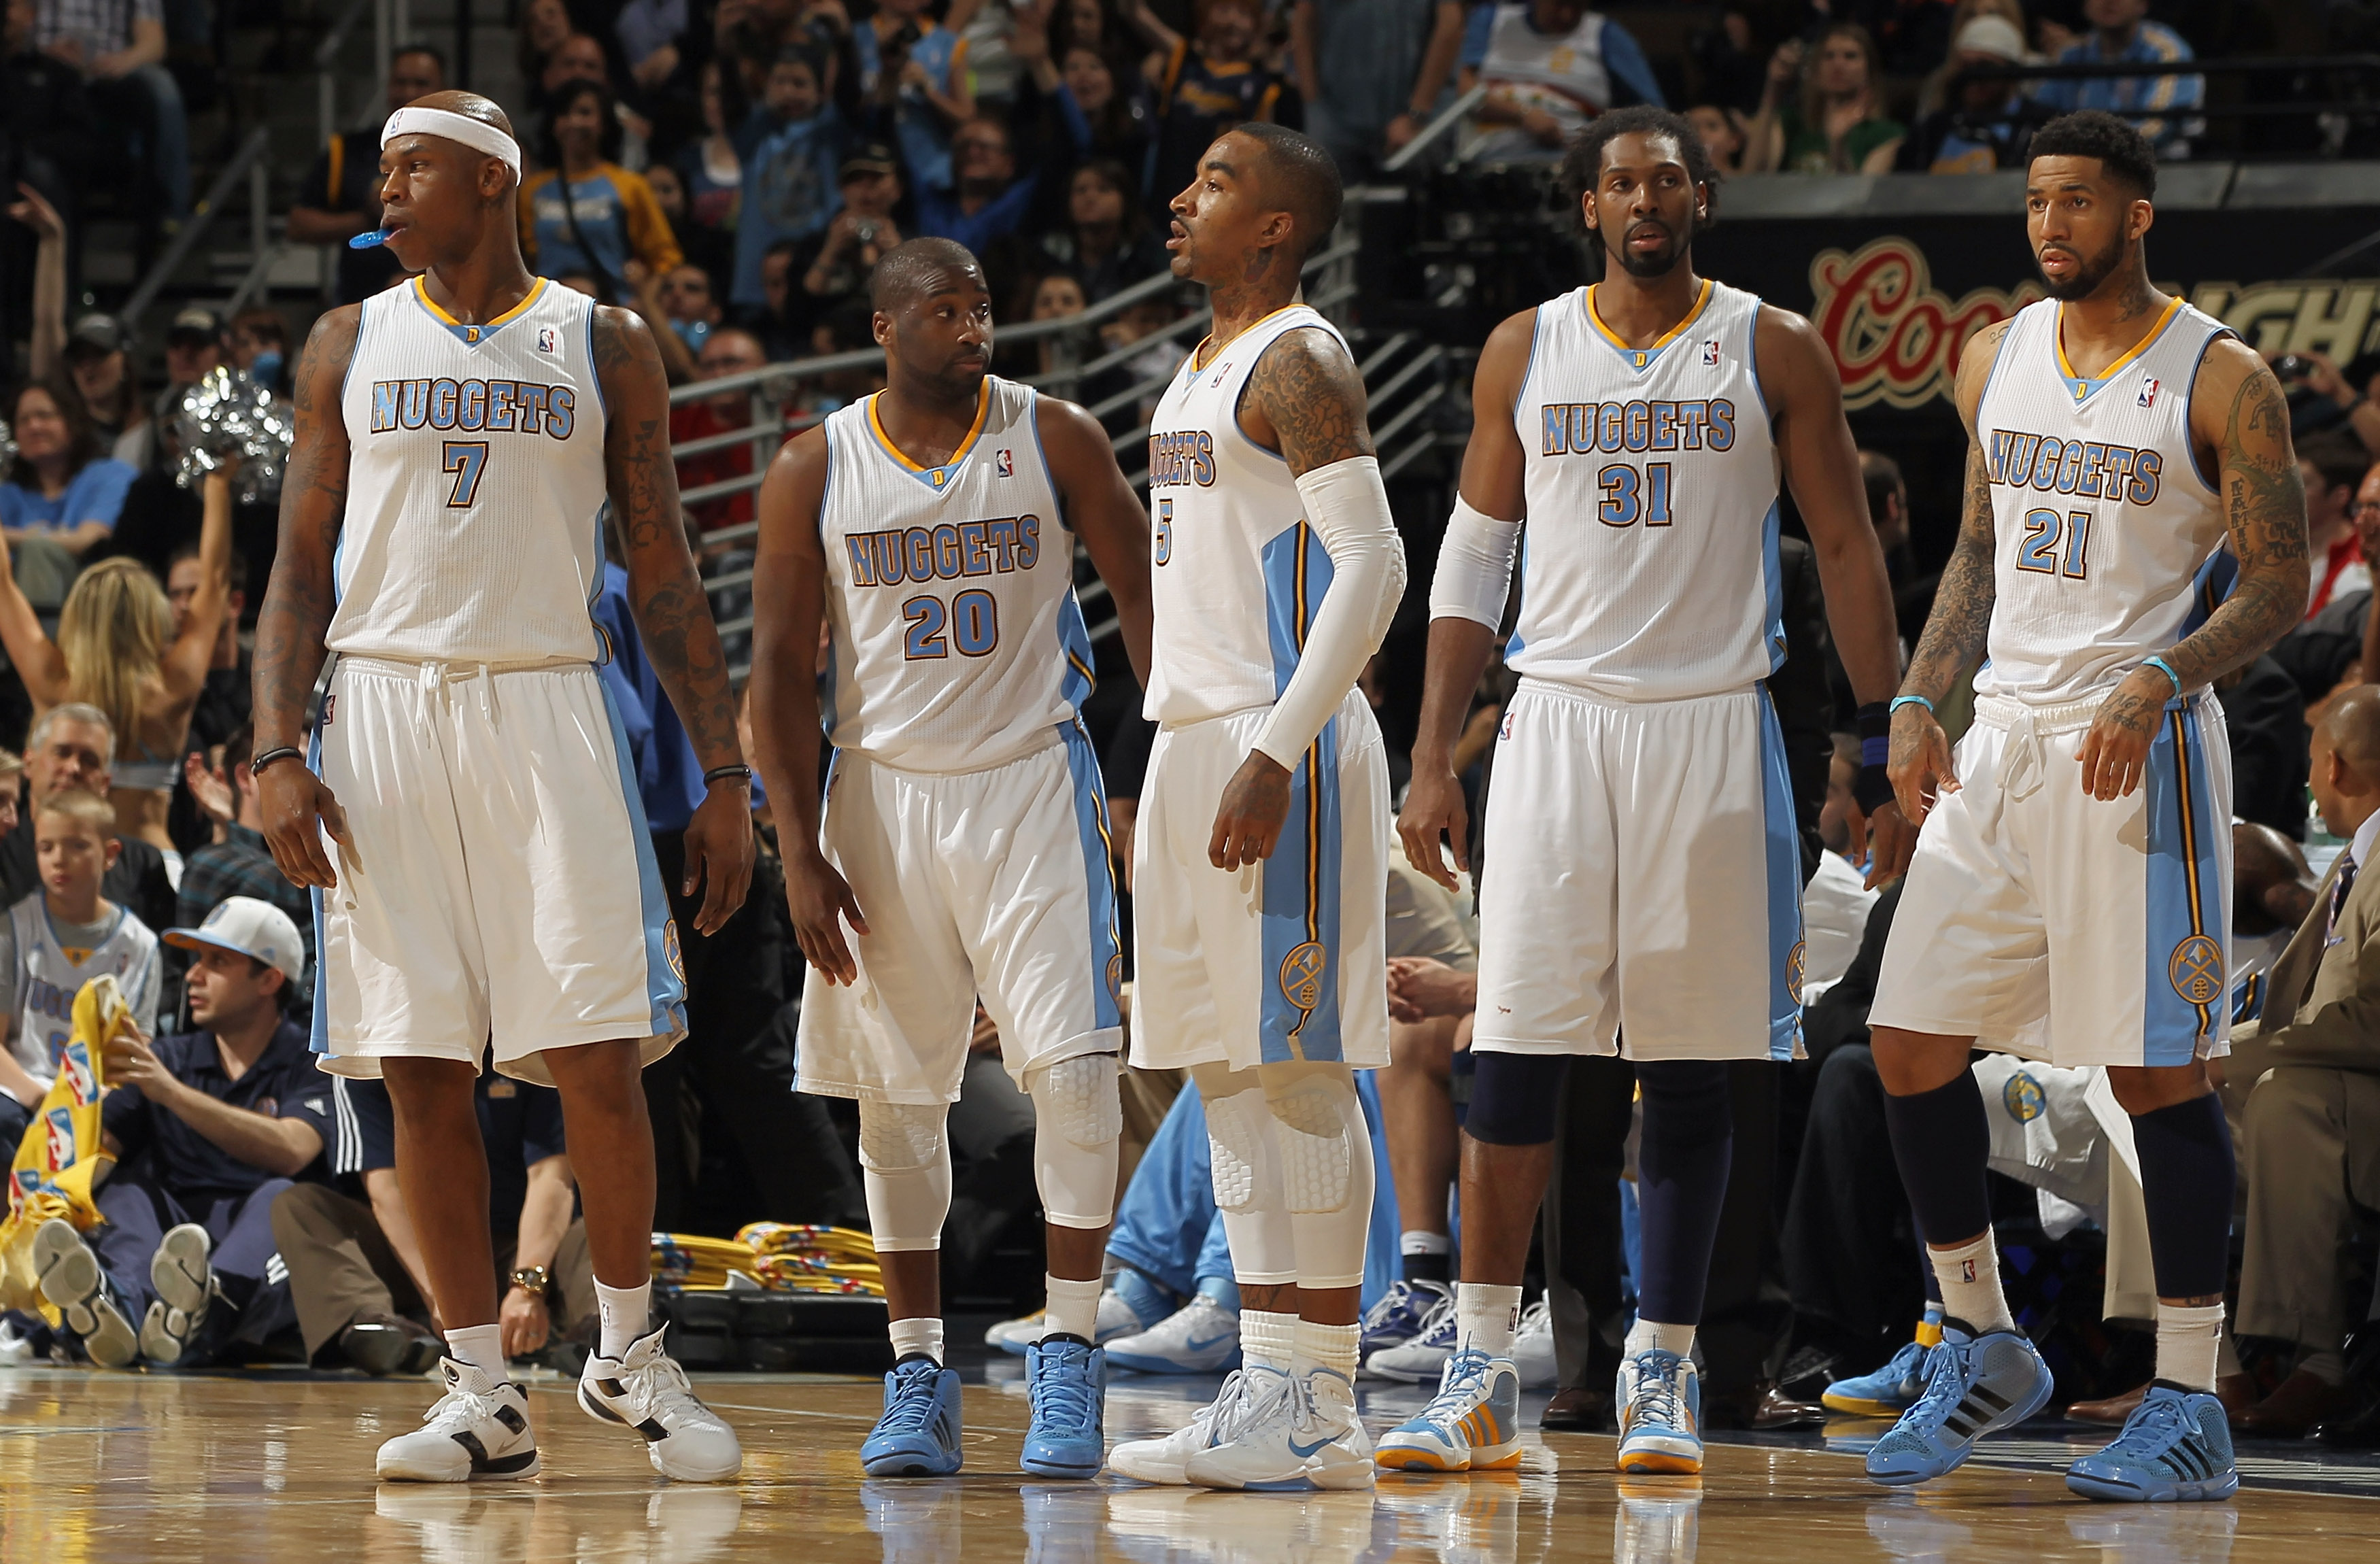 DENVER, CO - MARCH 23:  (L-R) Al Harrington #7, Raymond Felton #20, J.R. Smith #5, Nene #31 and Wilson Chandler #21 of the Denver Nuggets head back to the court after a time out against the San Antonio Spurs at the Pepsi Center on March 23, 2011 in Denver